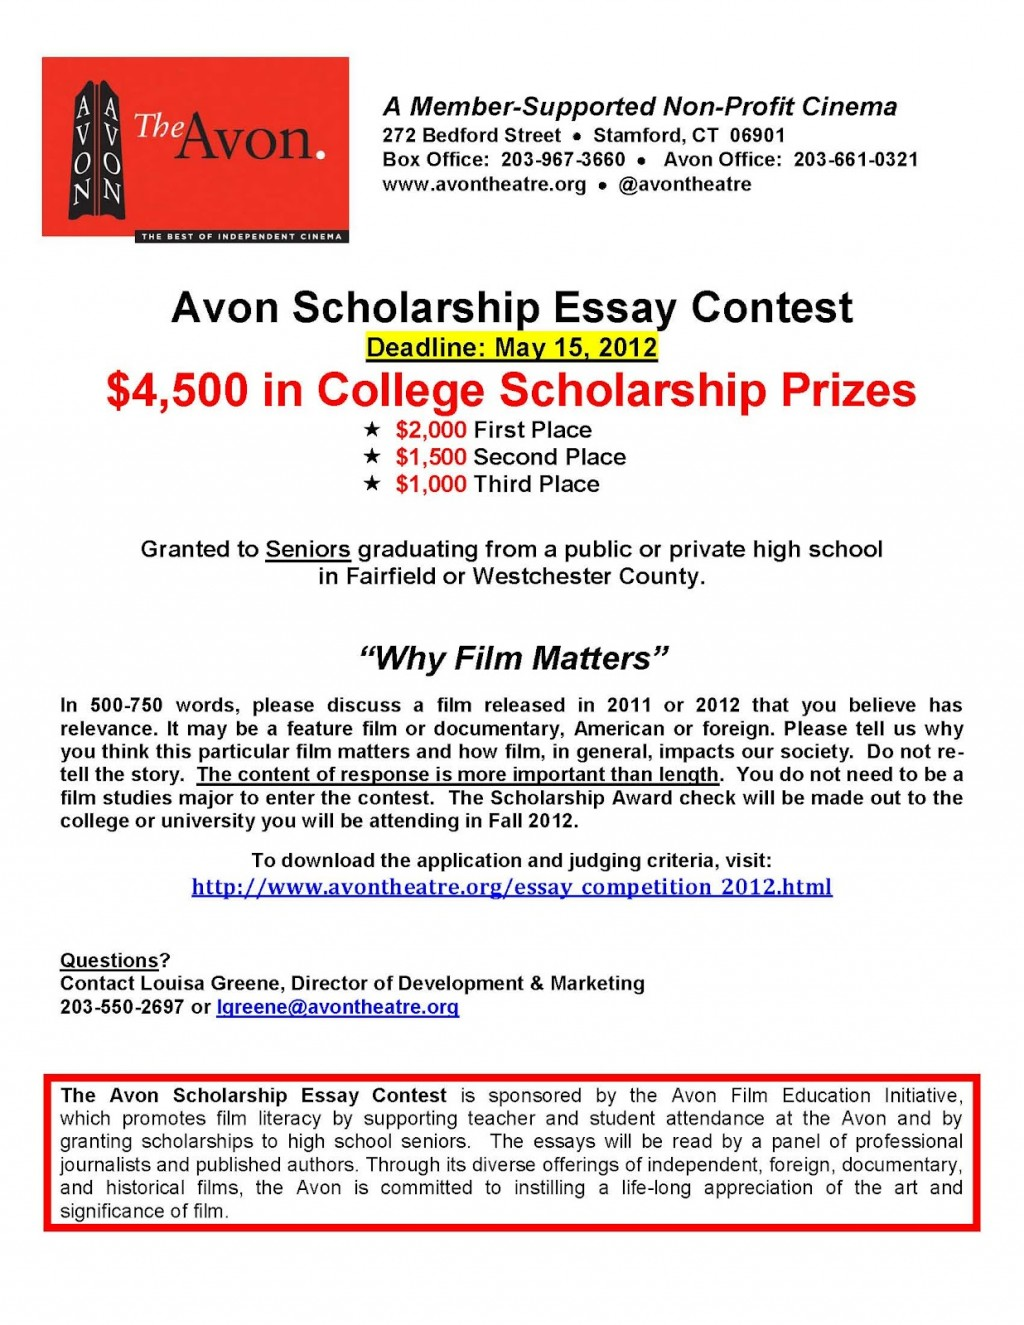 002 No Essay Collegeip Prowler Freeips For High School Seniors Avonscholarshipessaycontest2012 In Texas California Class Of Short Example Wondrous Scholarship Scholarships Niche Reddit Legit Large